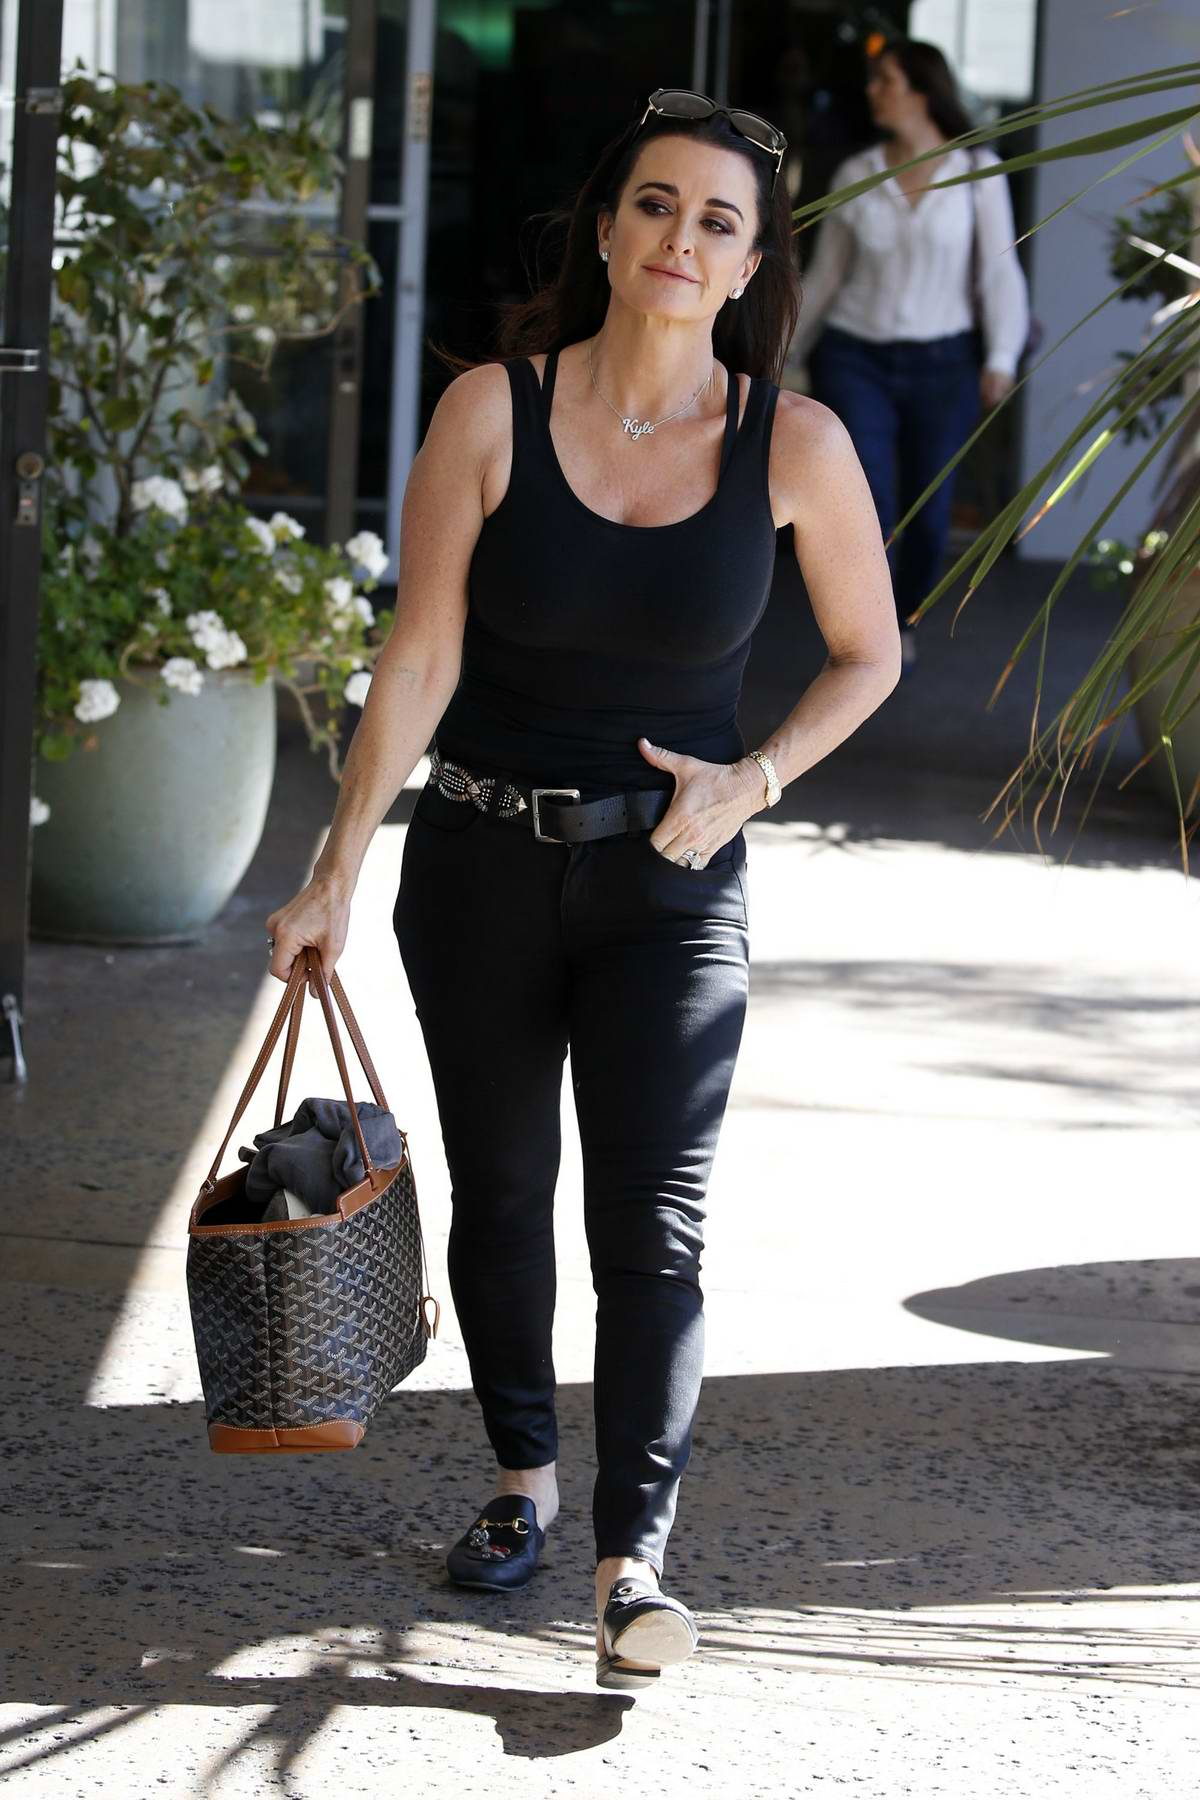 Kyle Richards is seen running errands in Bel-Air, Los Angeles